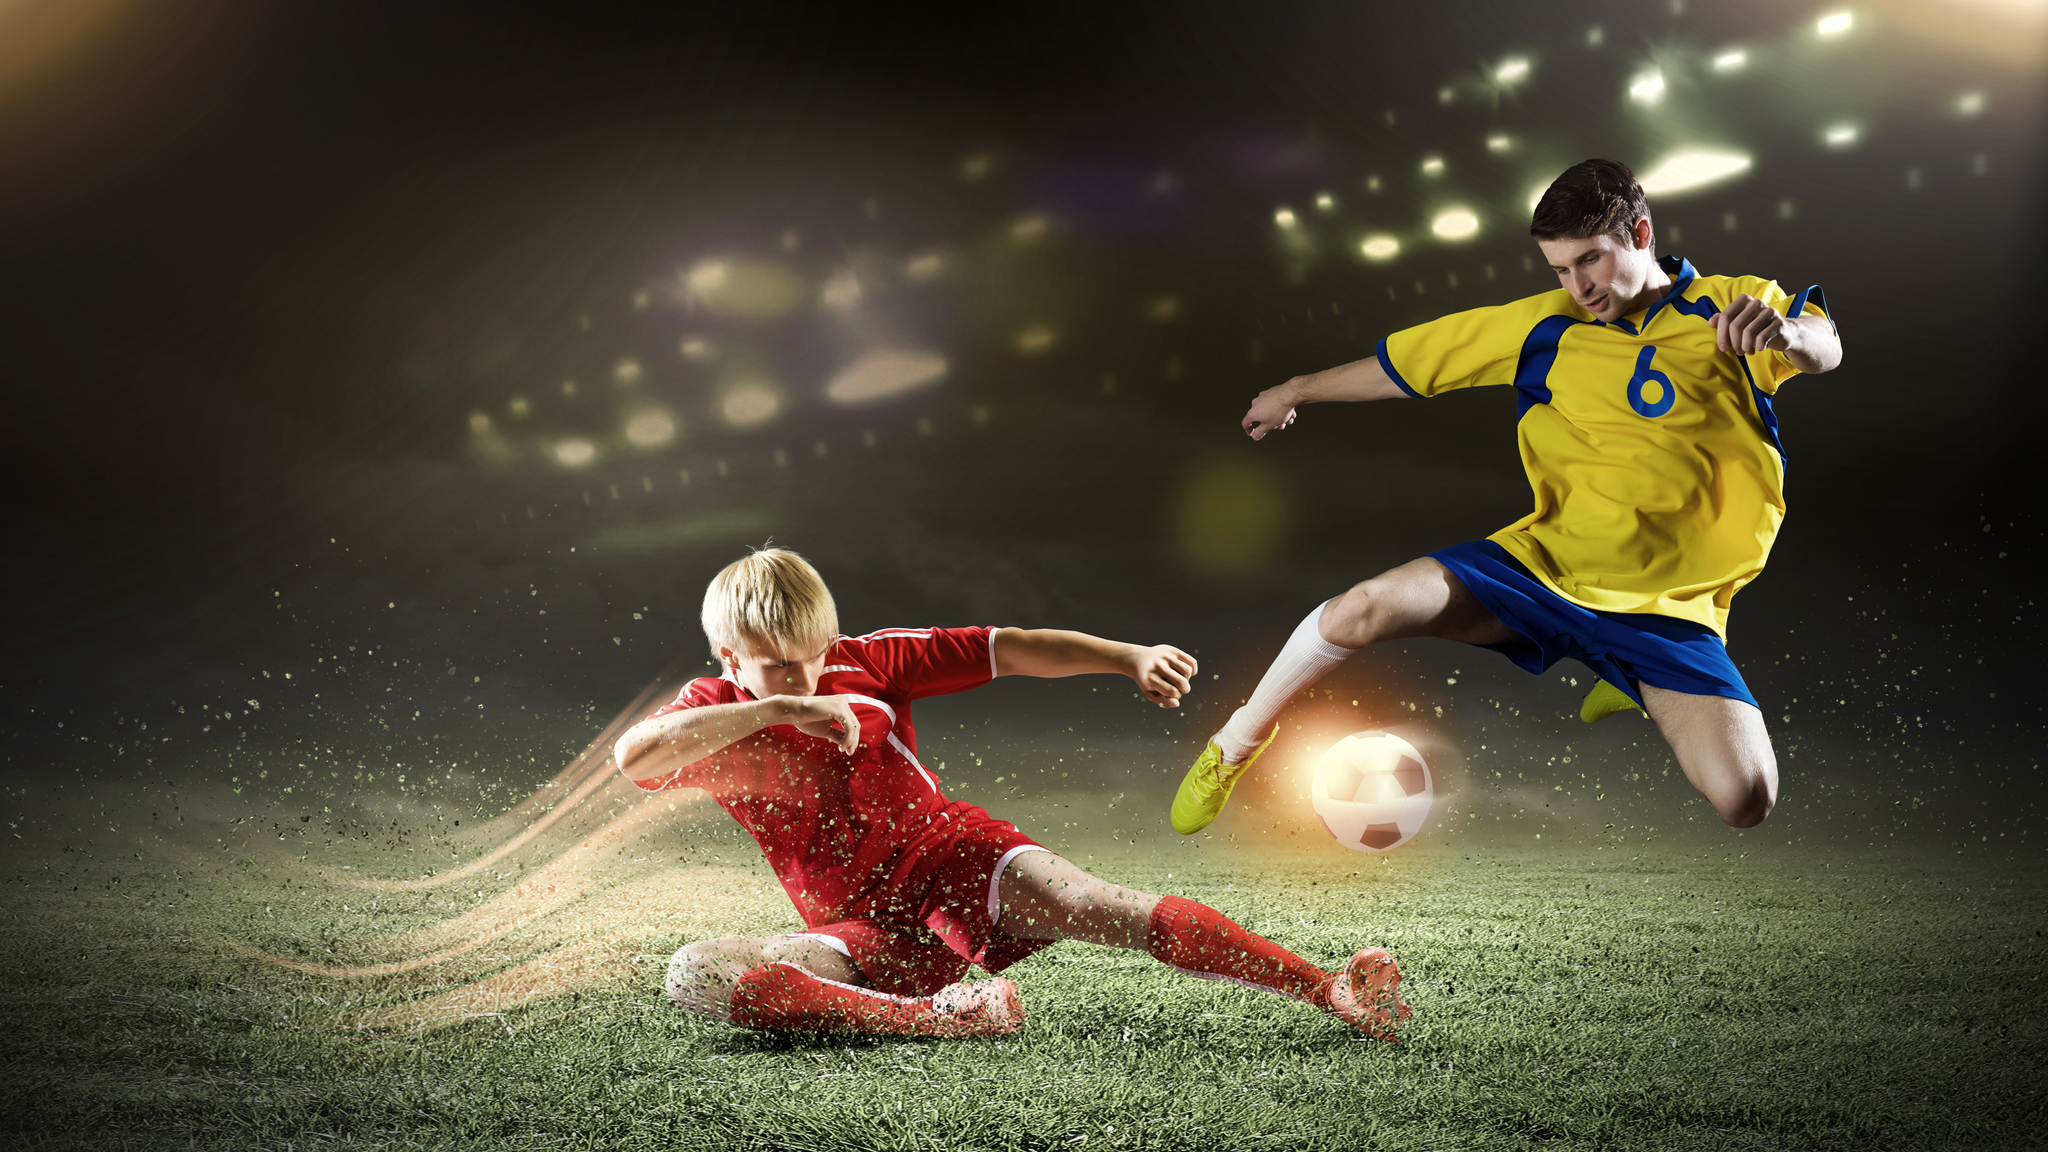 2048x1152 Soccer Players Football 4k 2048x1152 Resolution HD 4k Wallpapers, Images, Backgrounds ...